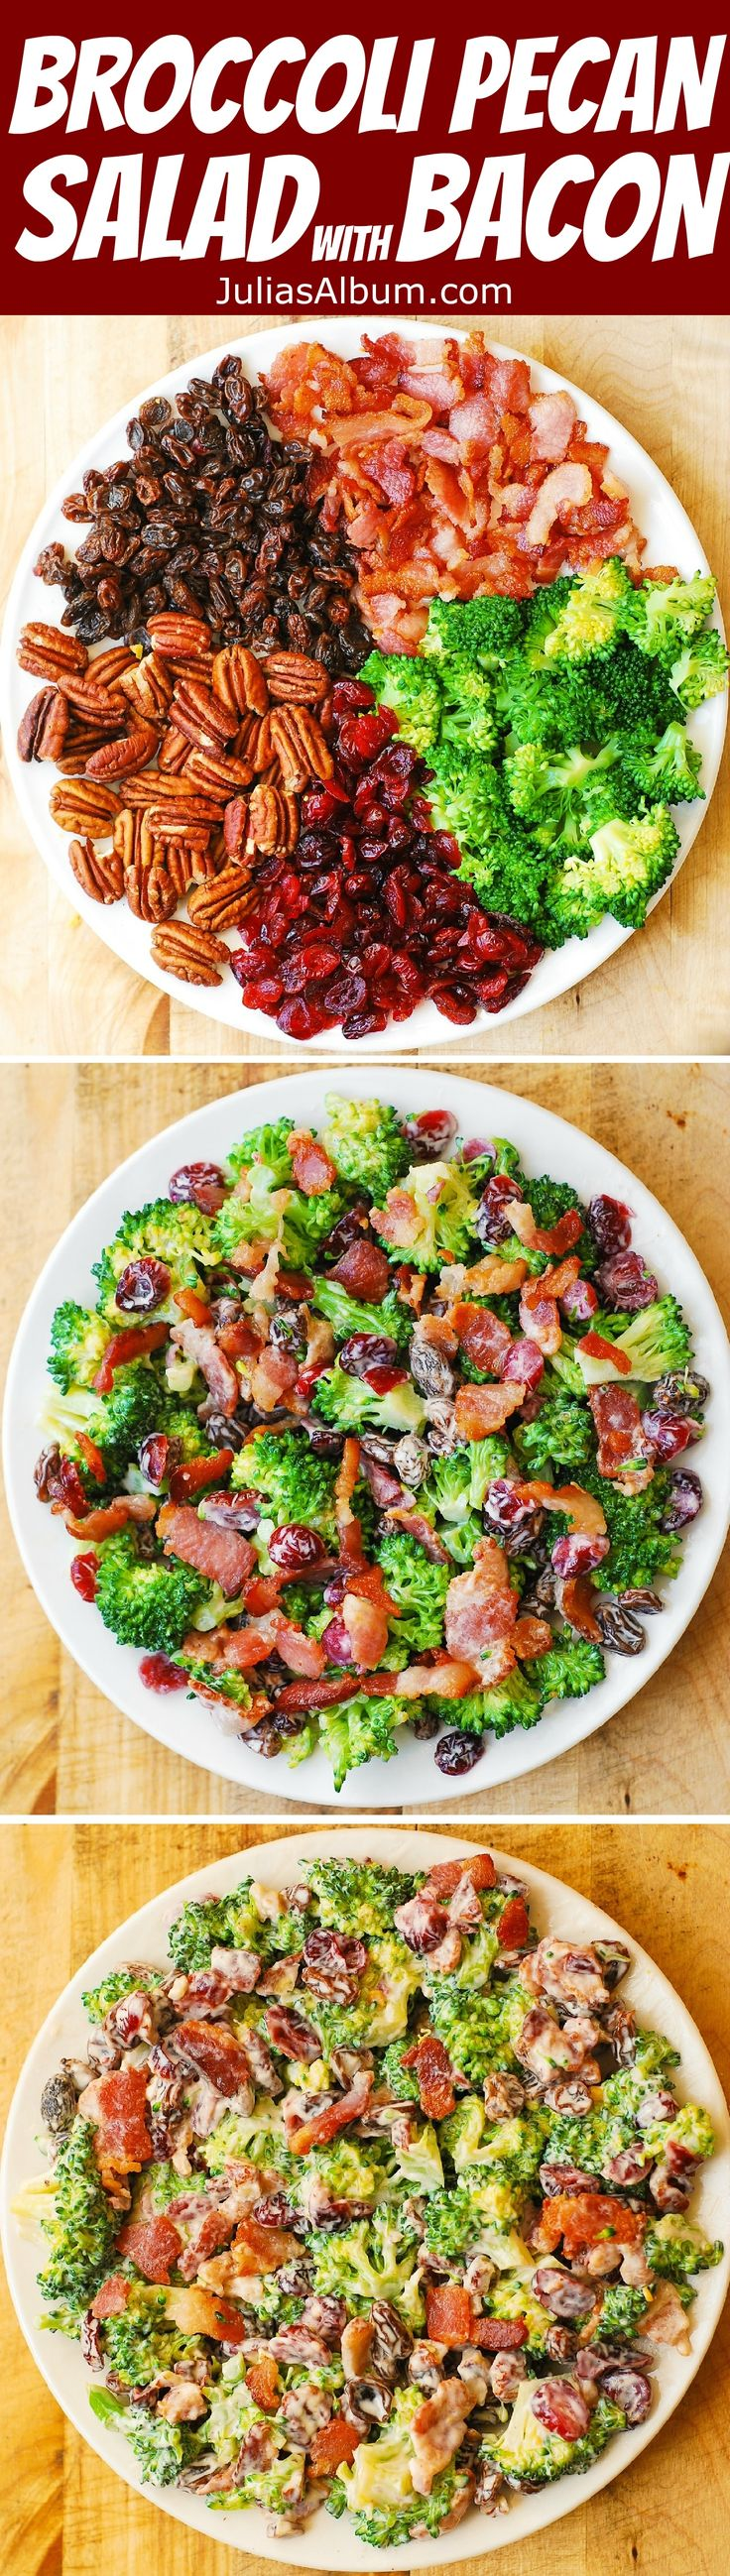 Broccoli Salad with Pecans, Cranberries, Raisins, and Bacon - healthy, DELICIOUS, gluten free salad, packed with fiber!